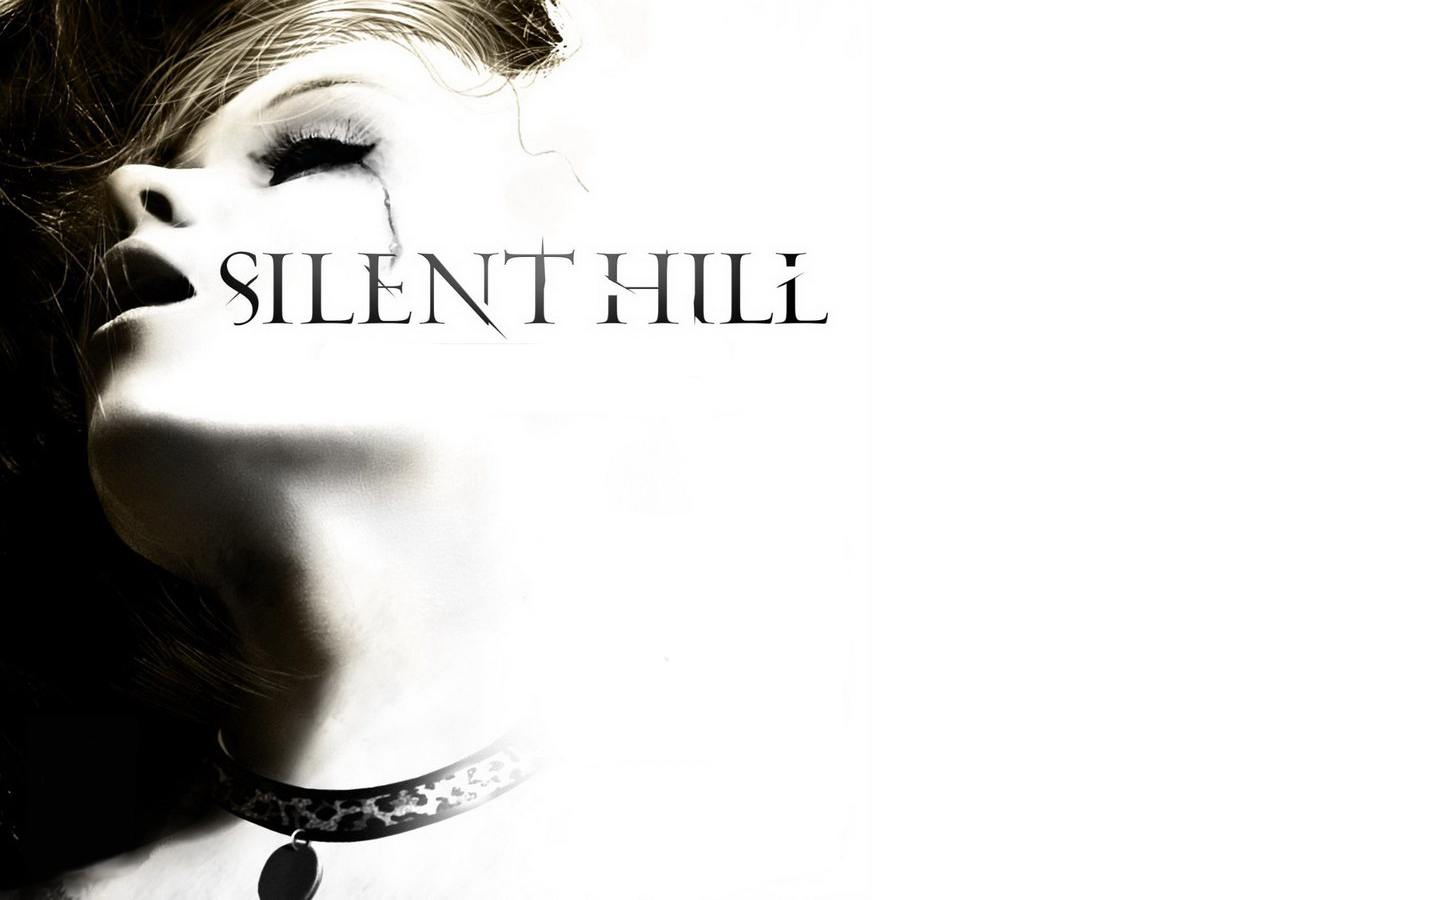 1440x900 - Silent Hill HD Wallpapers 5